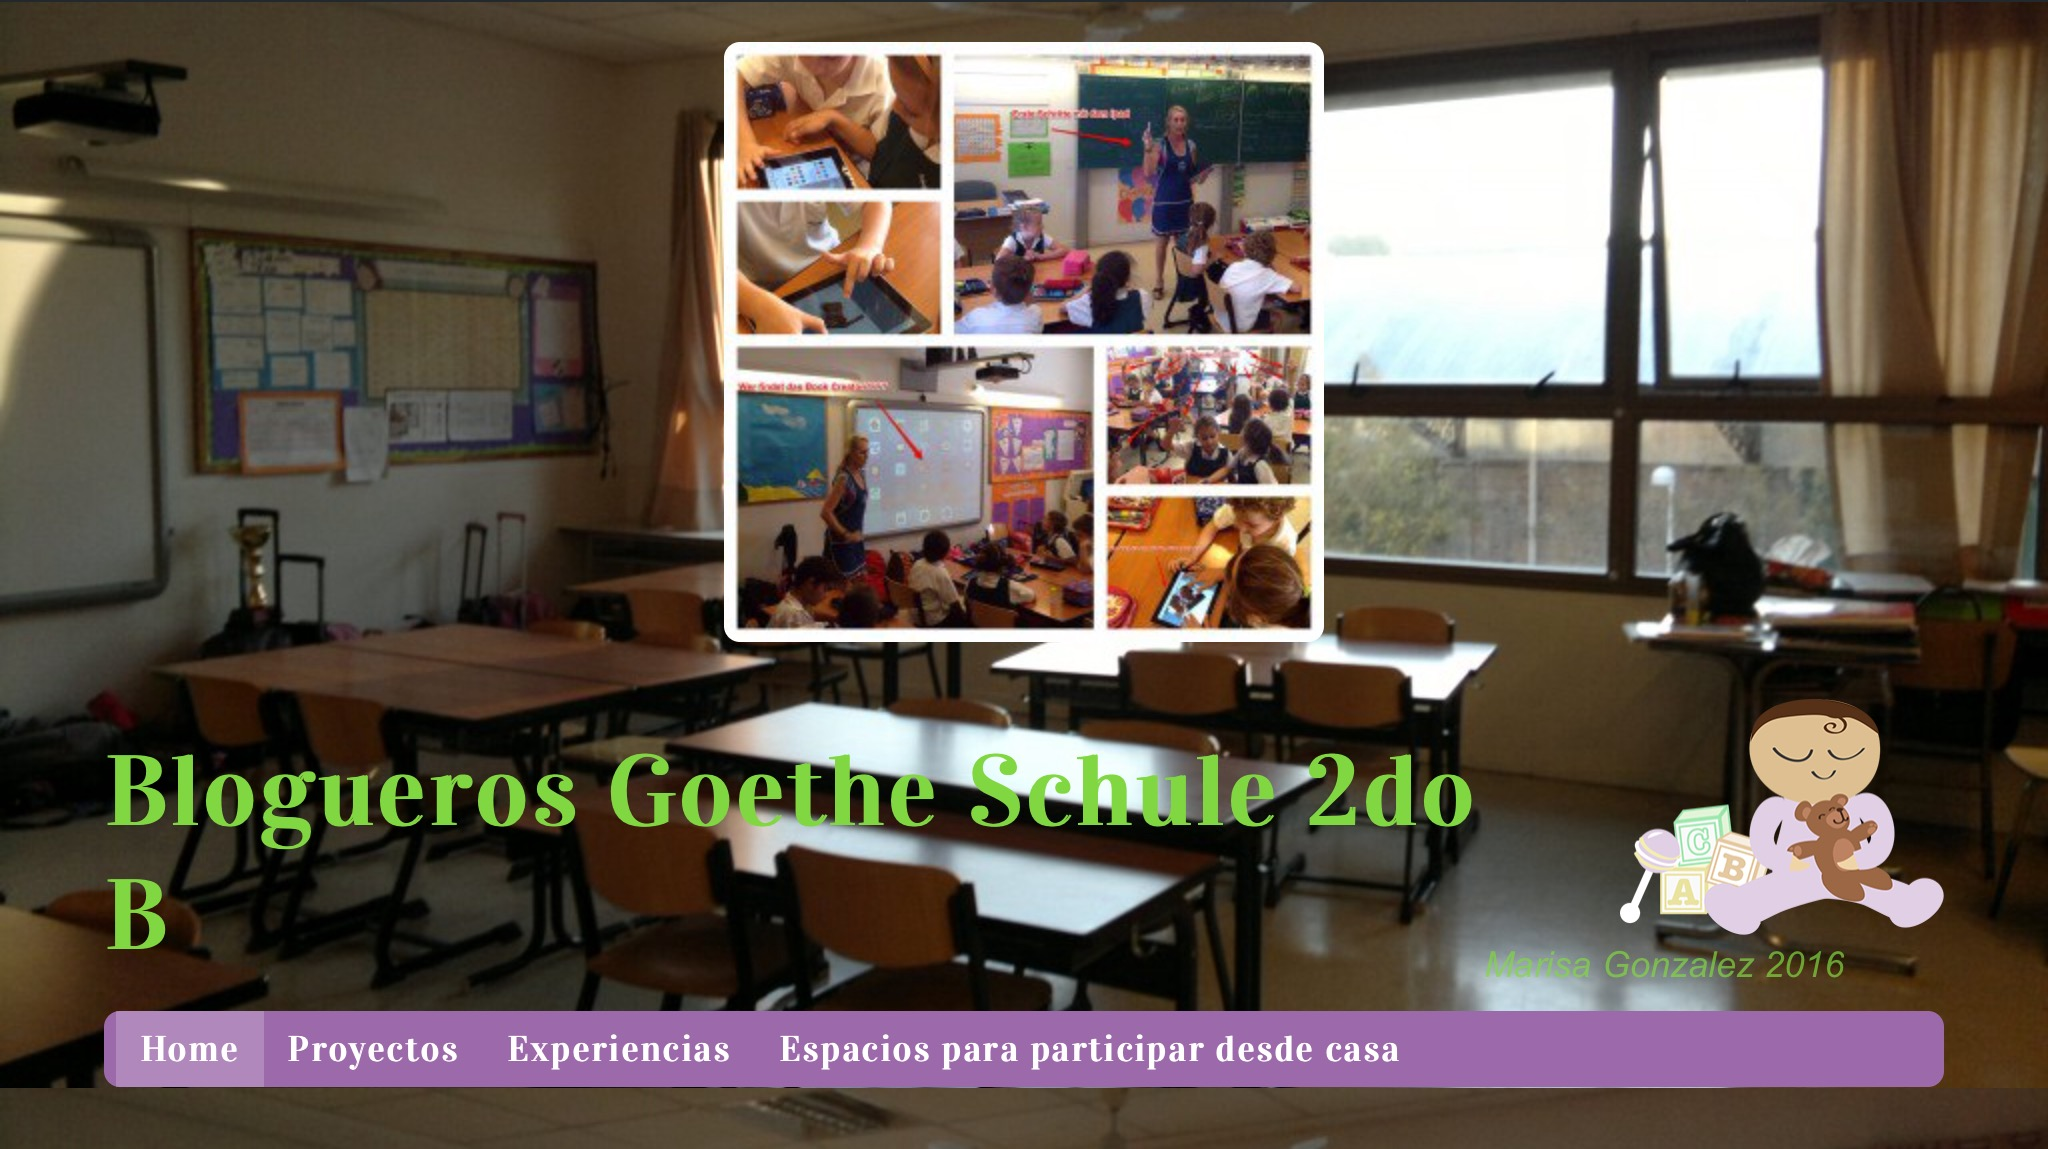 Blogueros Goethe Schule 2do